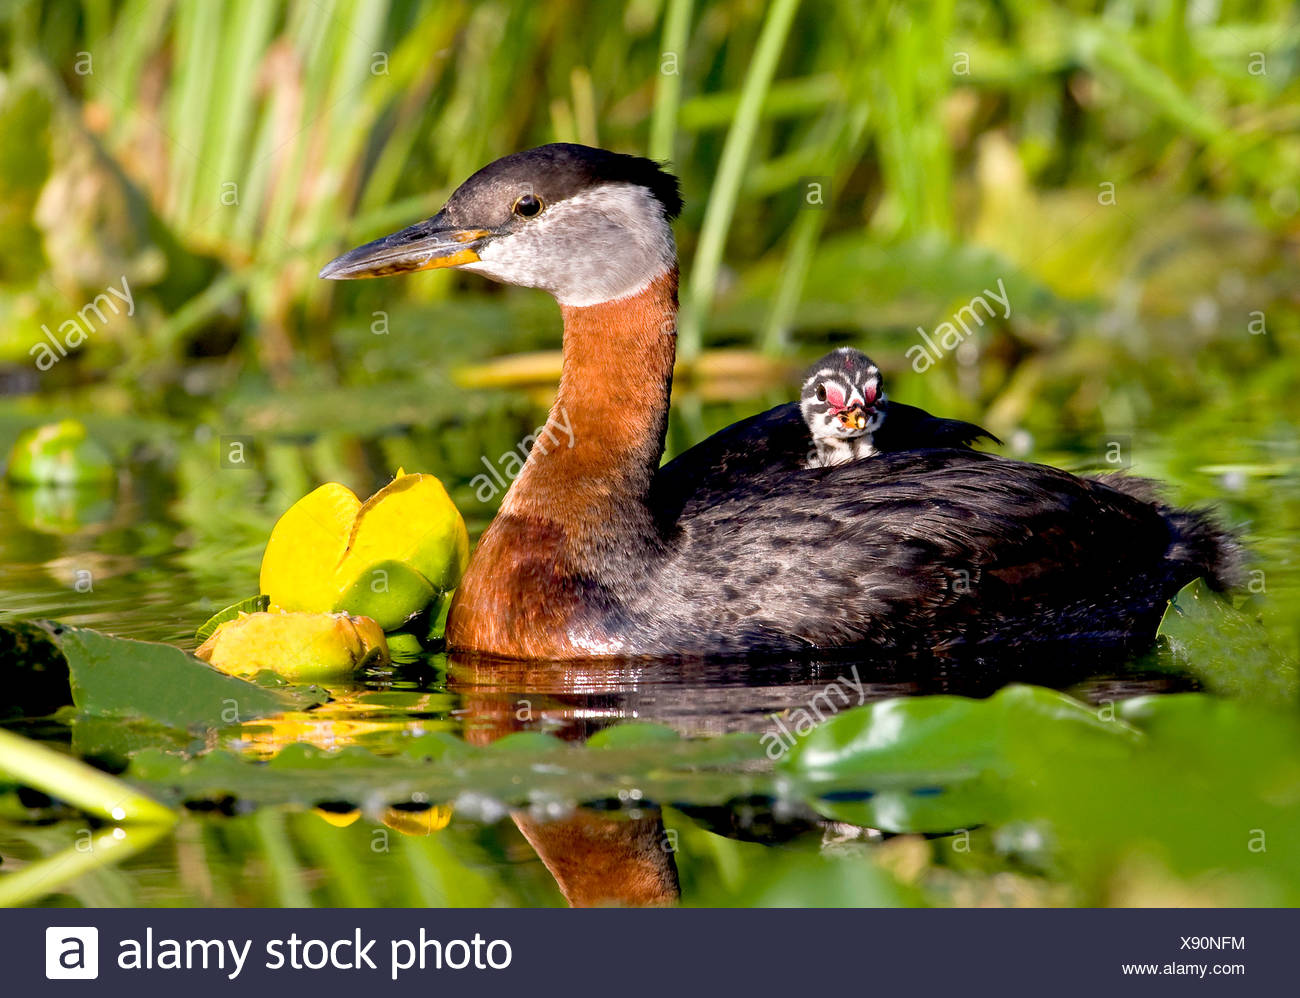 Alaska. Red-necked Grebe (Podiceps grisegena) with chick riding on back. - Stock Image